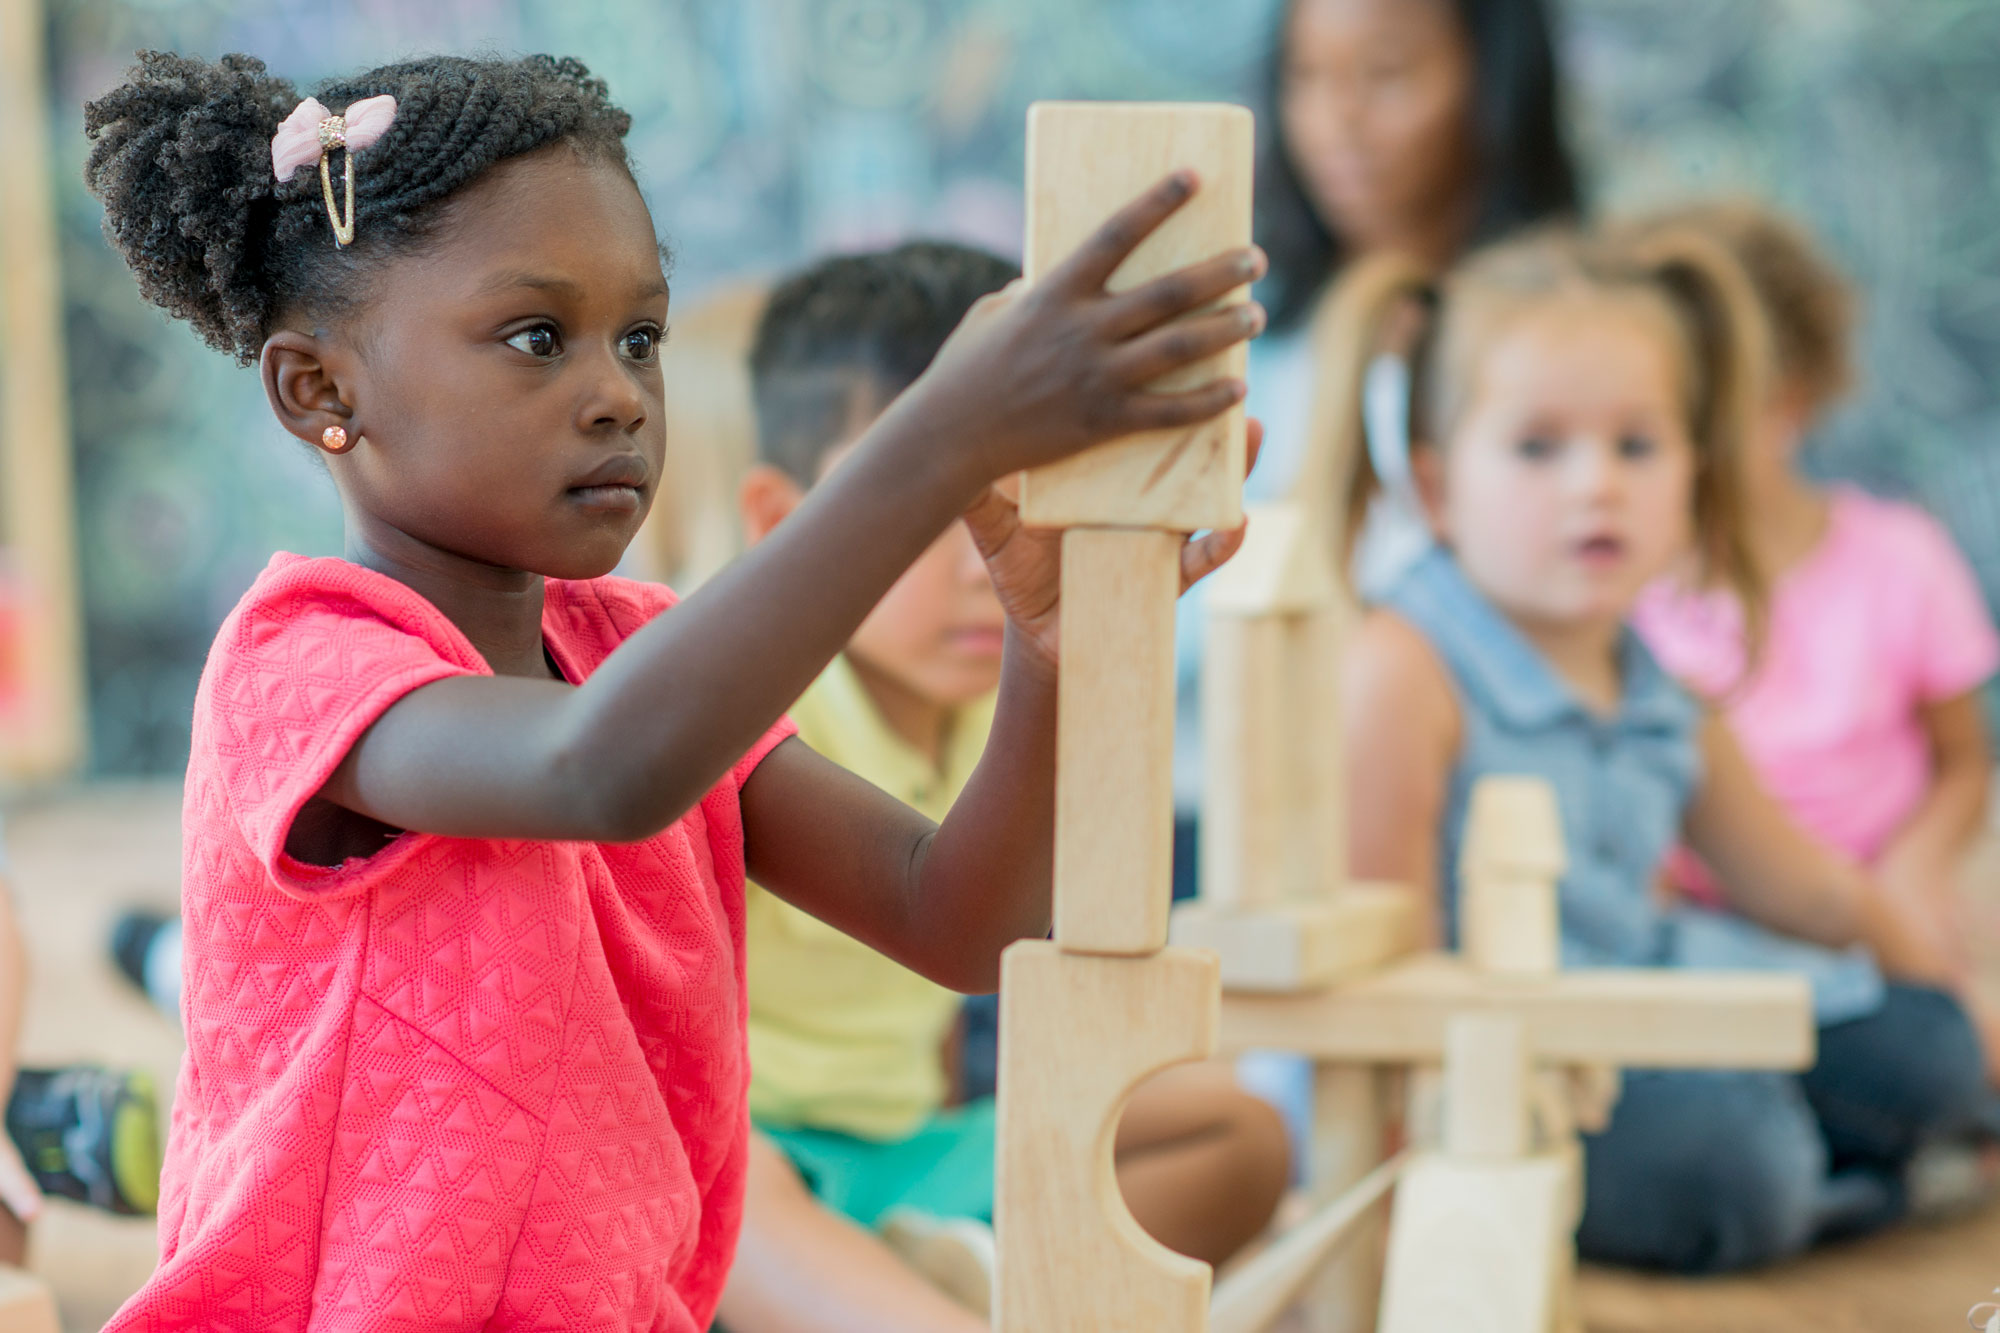 A girl plays with building blocks.